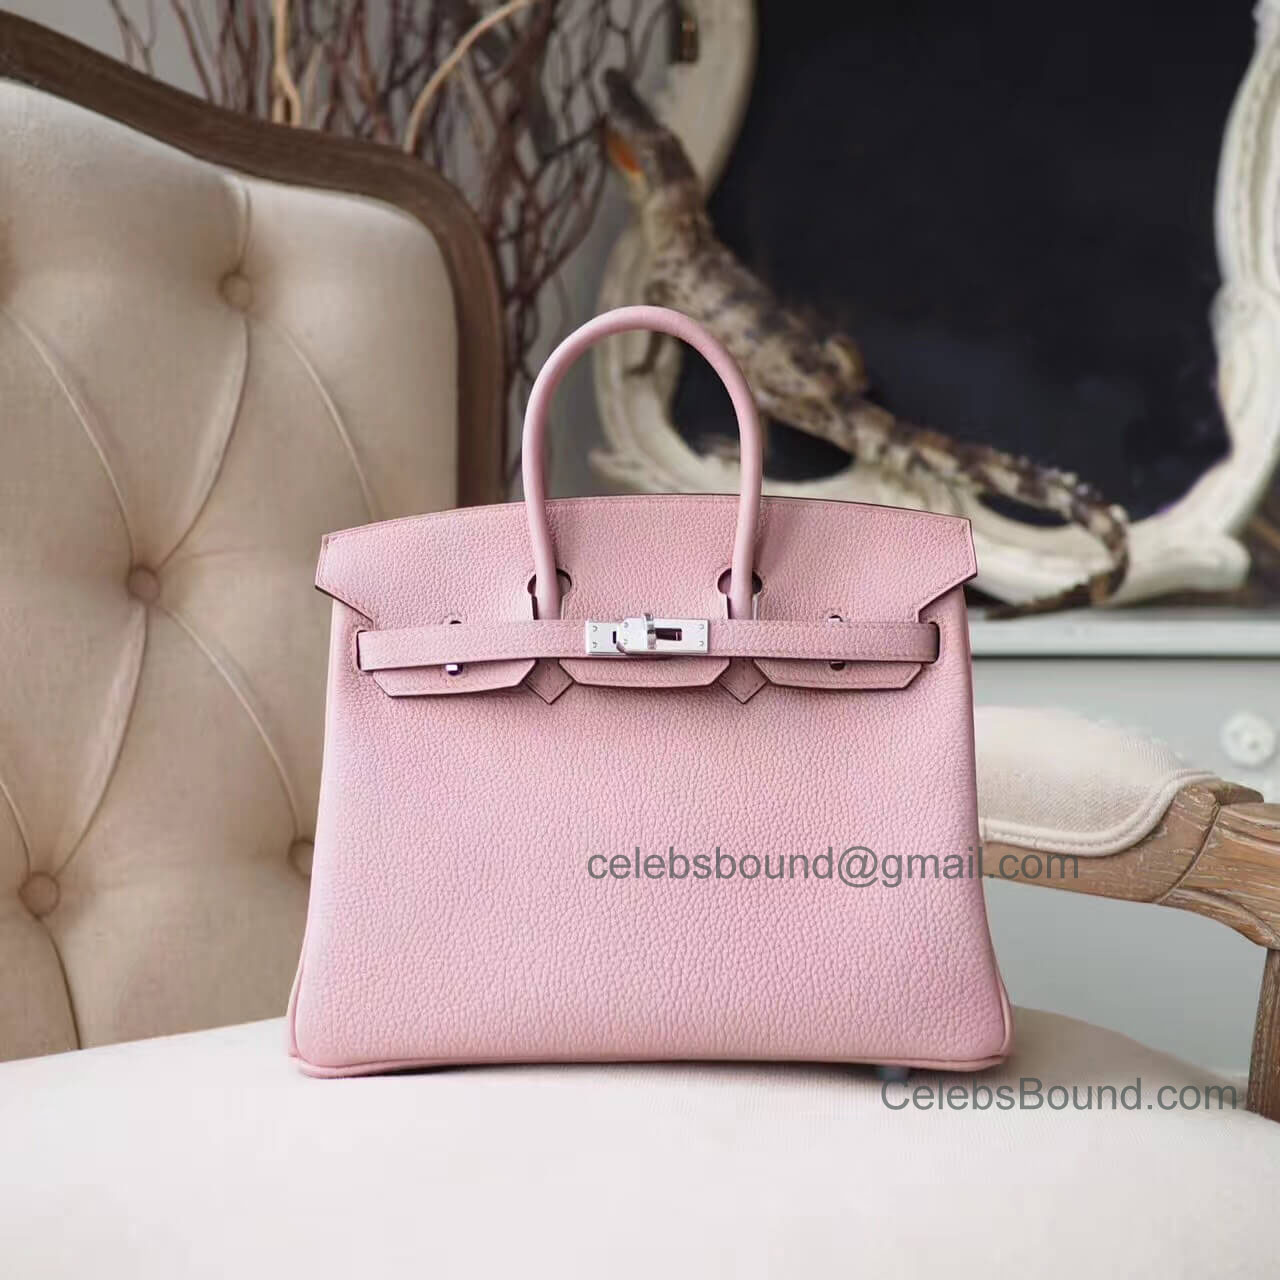 Hermes Birkin 25 Bag in 4w Glycine Togo PHW